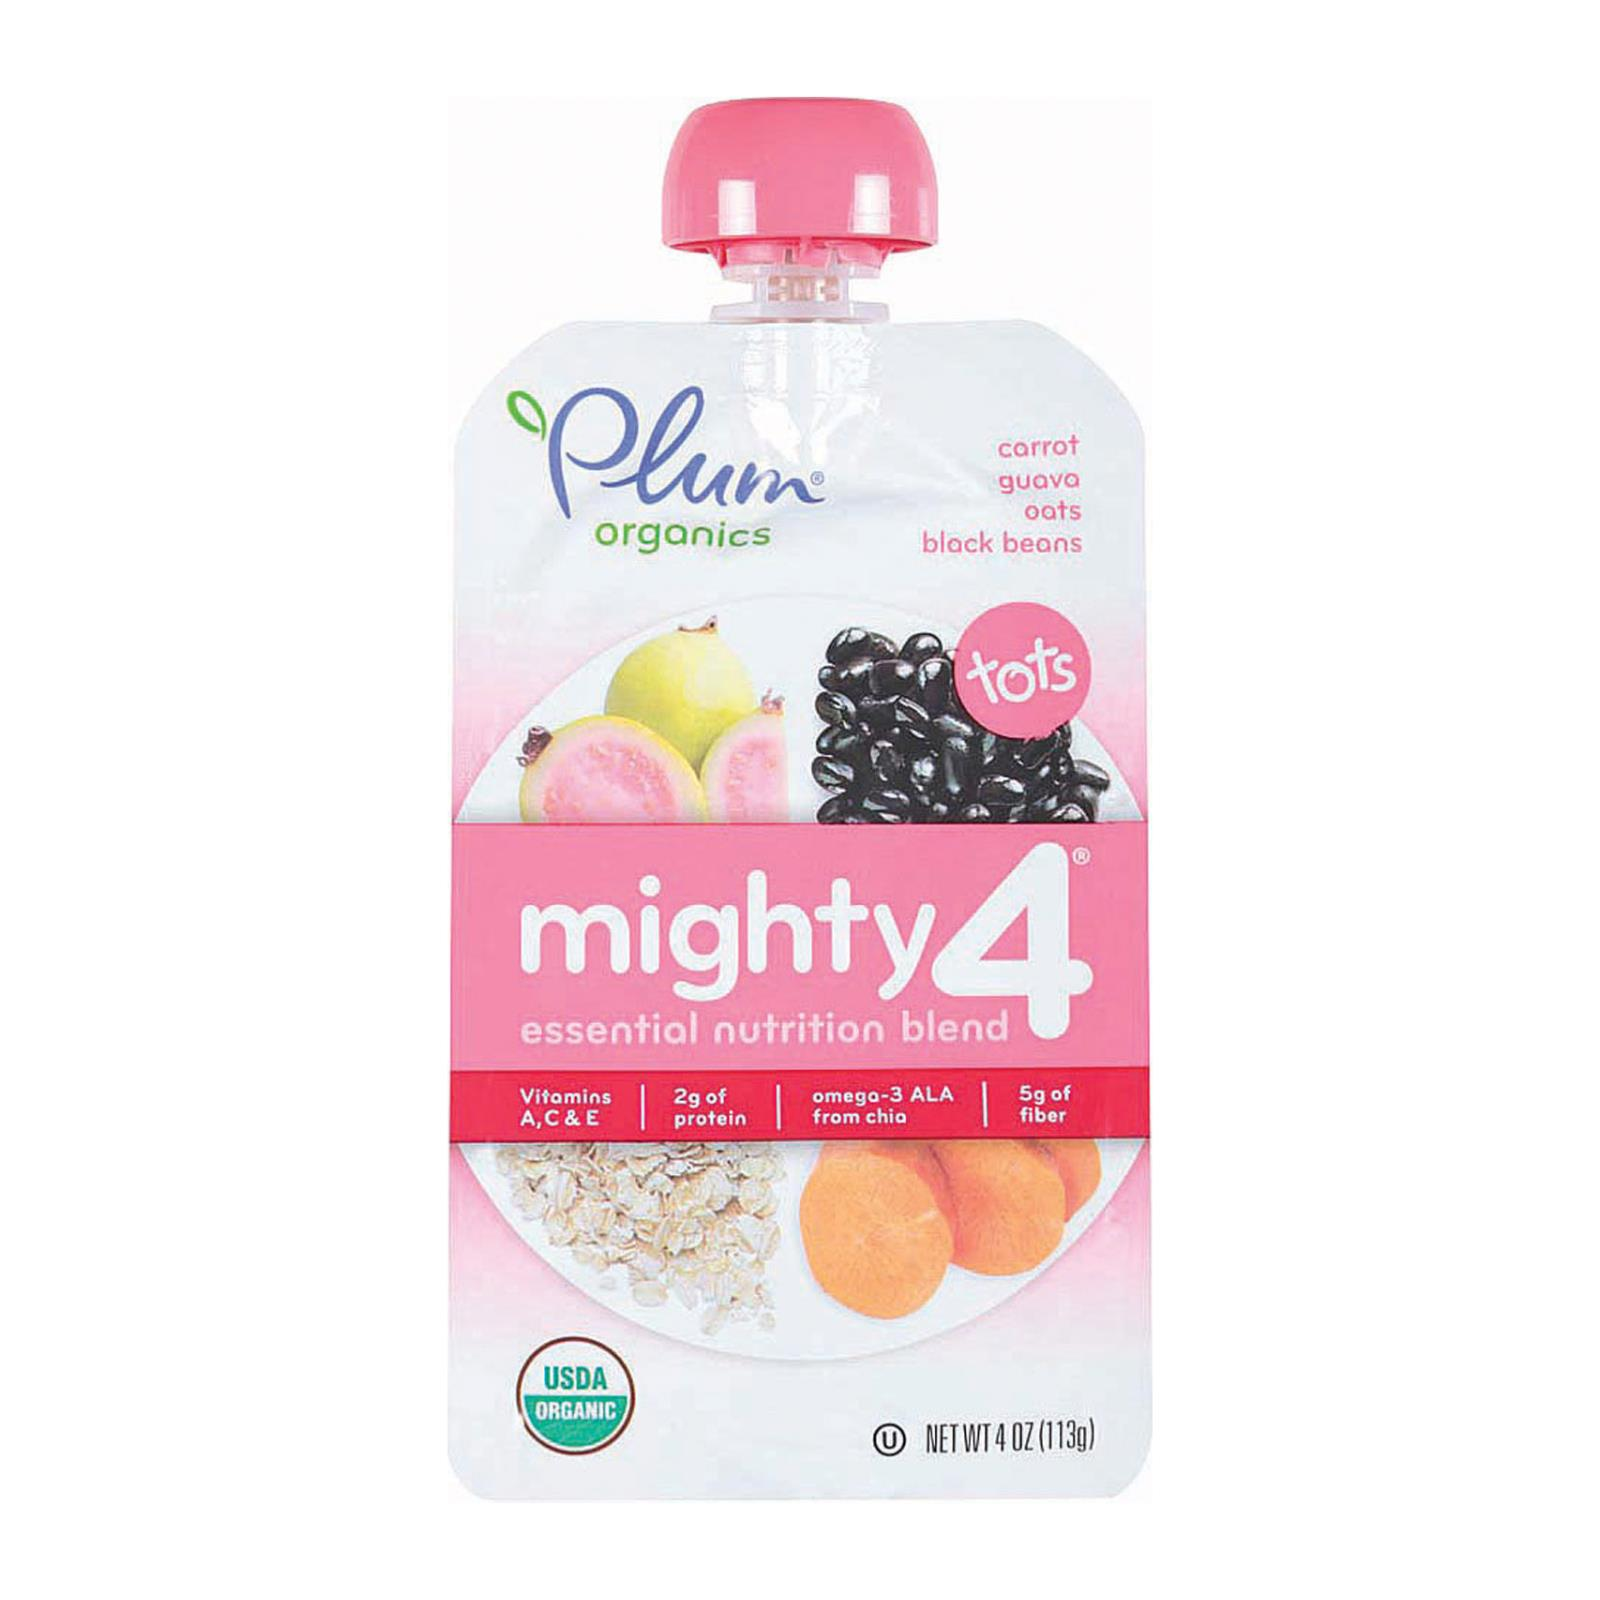 Plum Organics Mighty 4 Blends Tots - Guava Pomegranate Black Bean Carrot and Oat - Case of 6 - 4 oz.